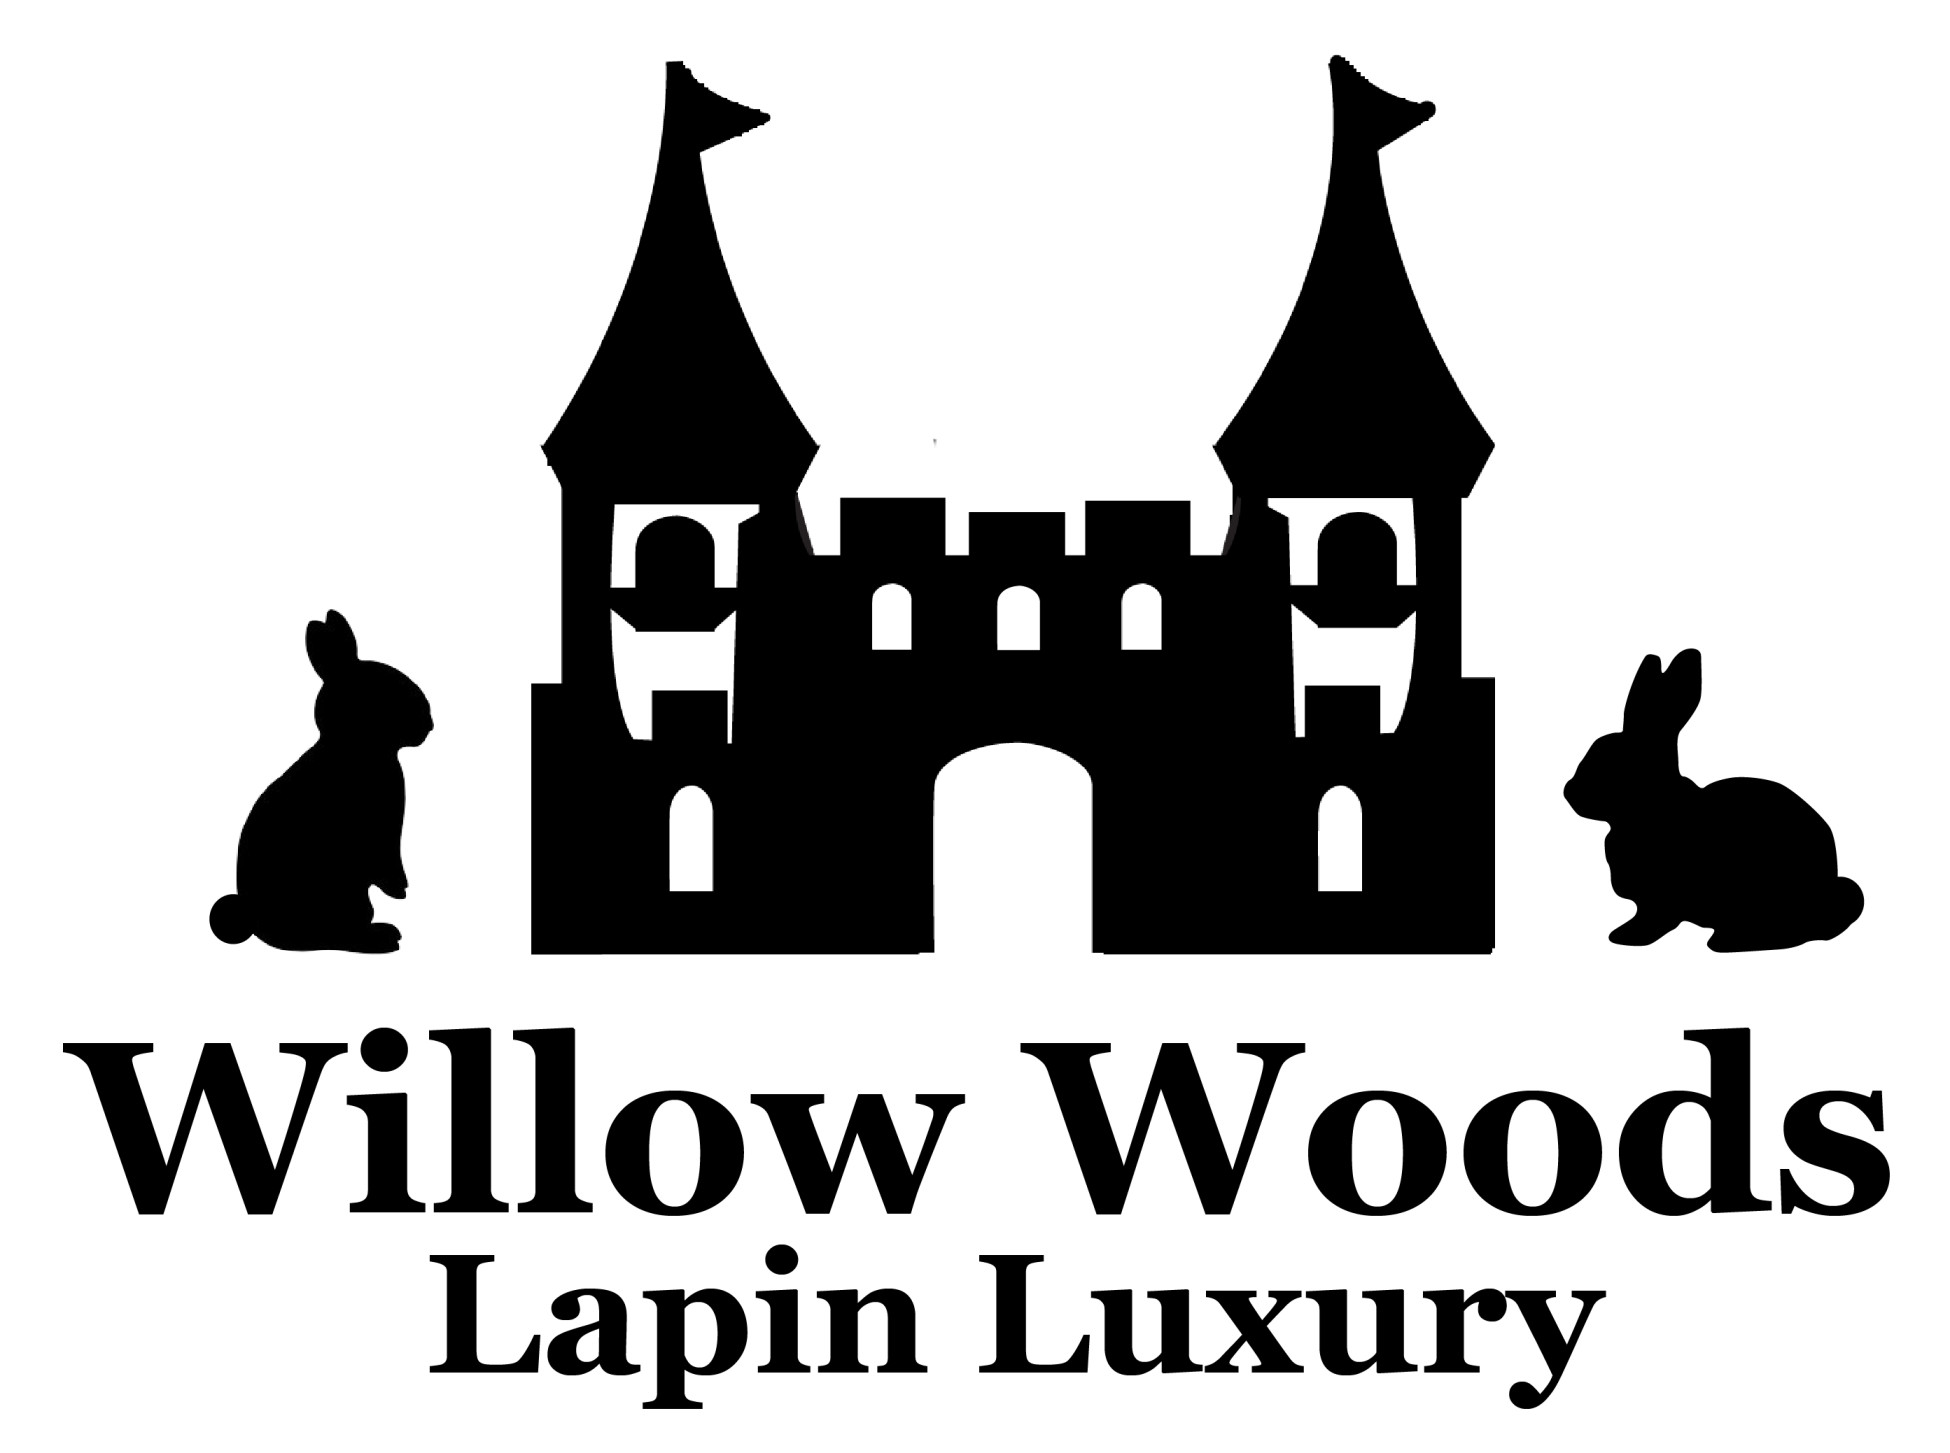 Willow Woods Lapin Luxury